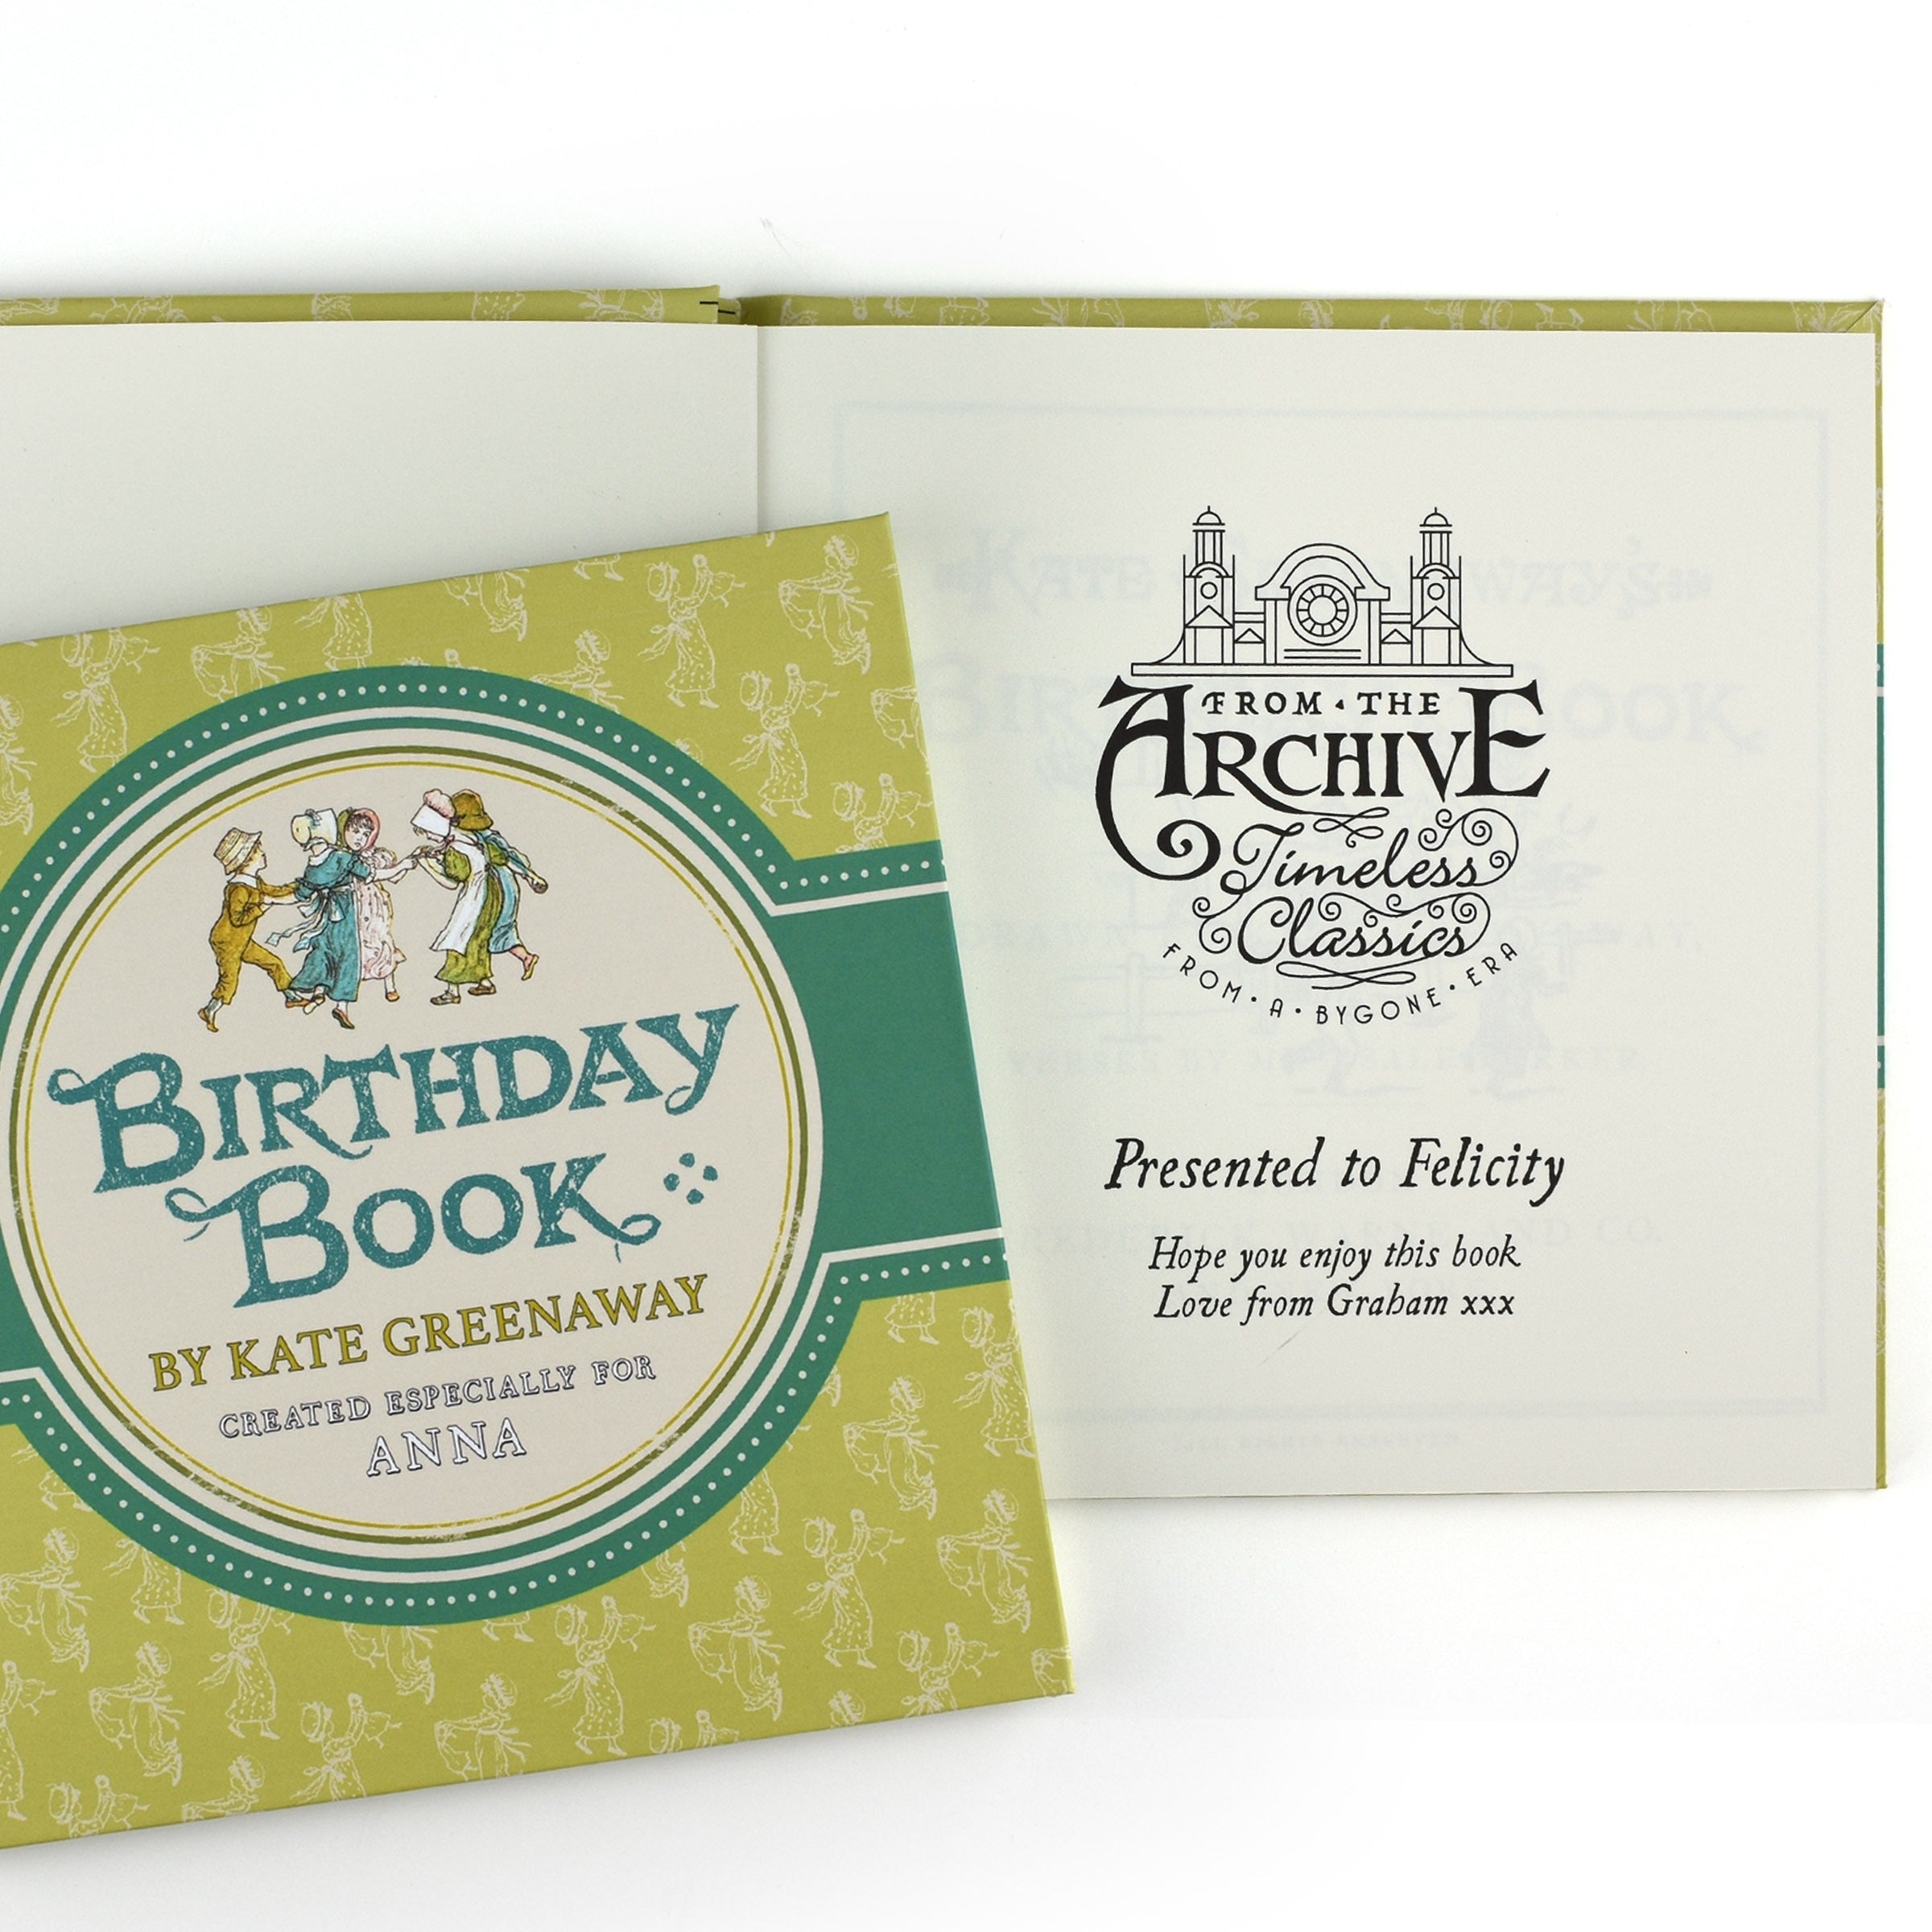 PERSONALISED Children's Book : Kate Greenaway's Birthday Book, Add Your Name